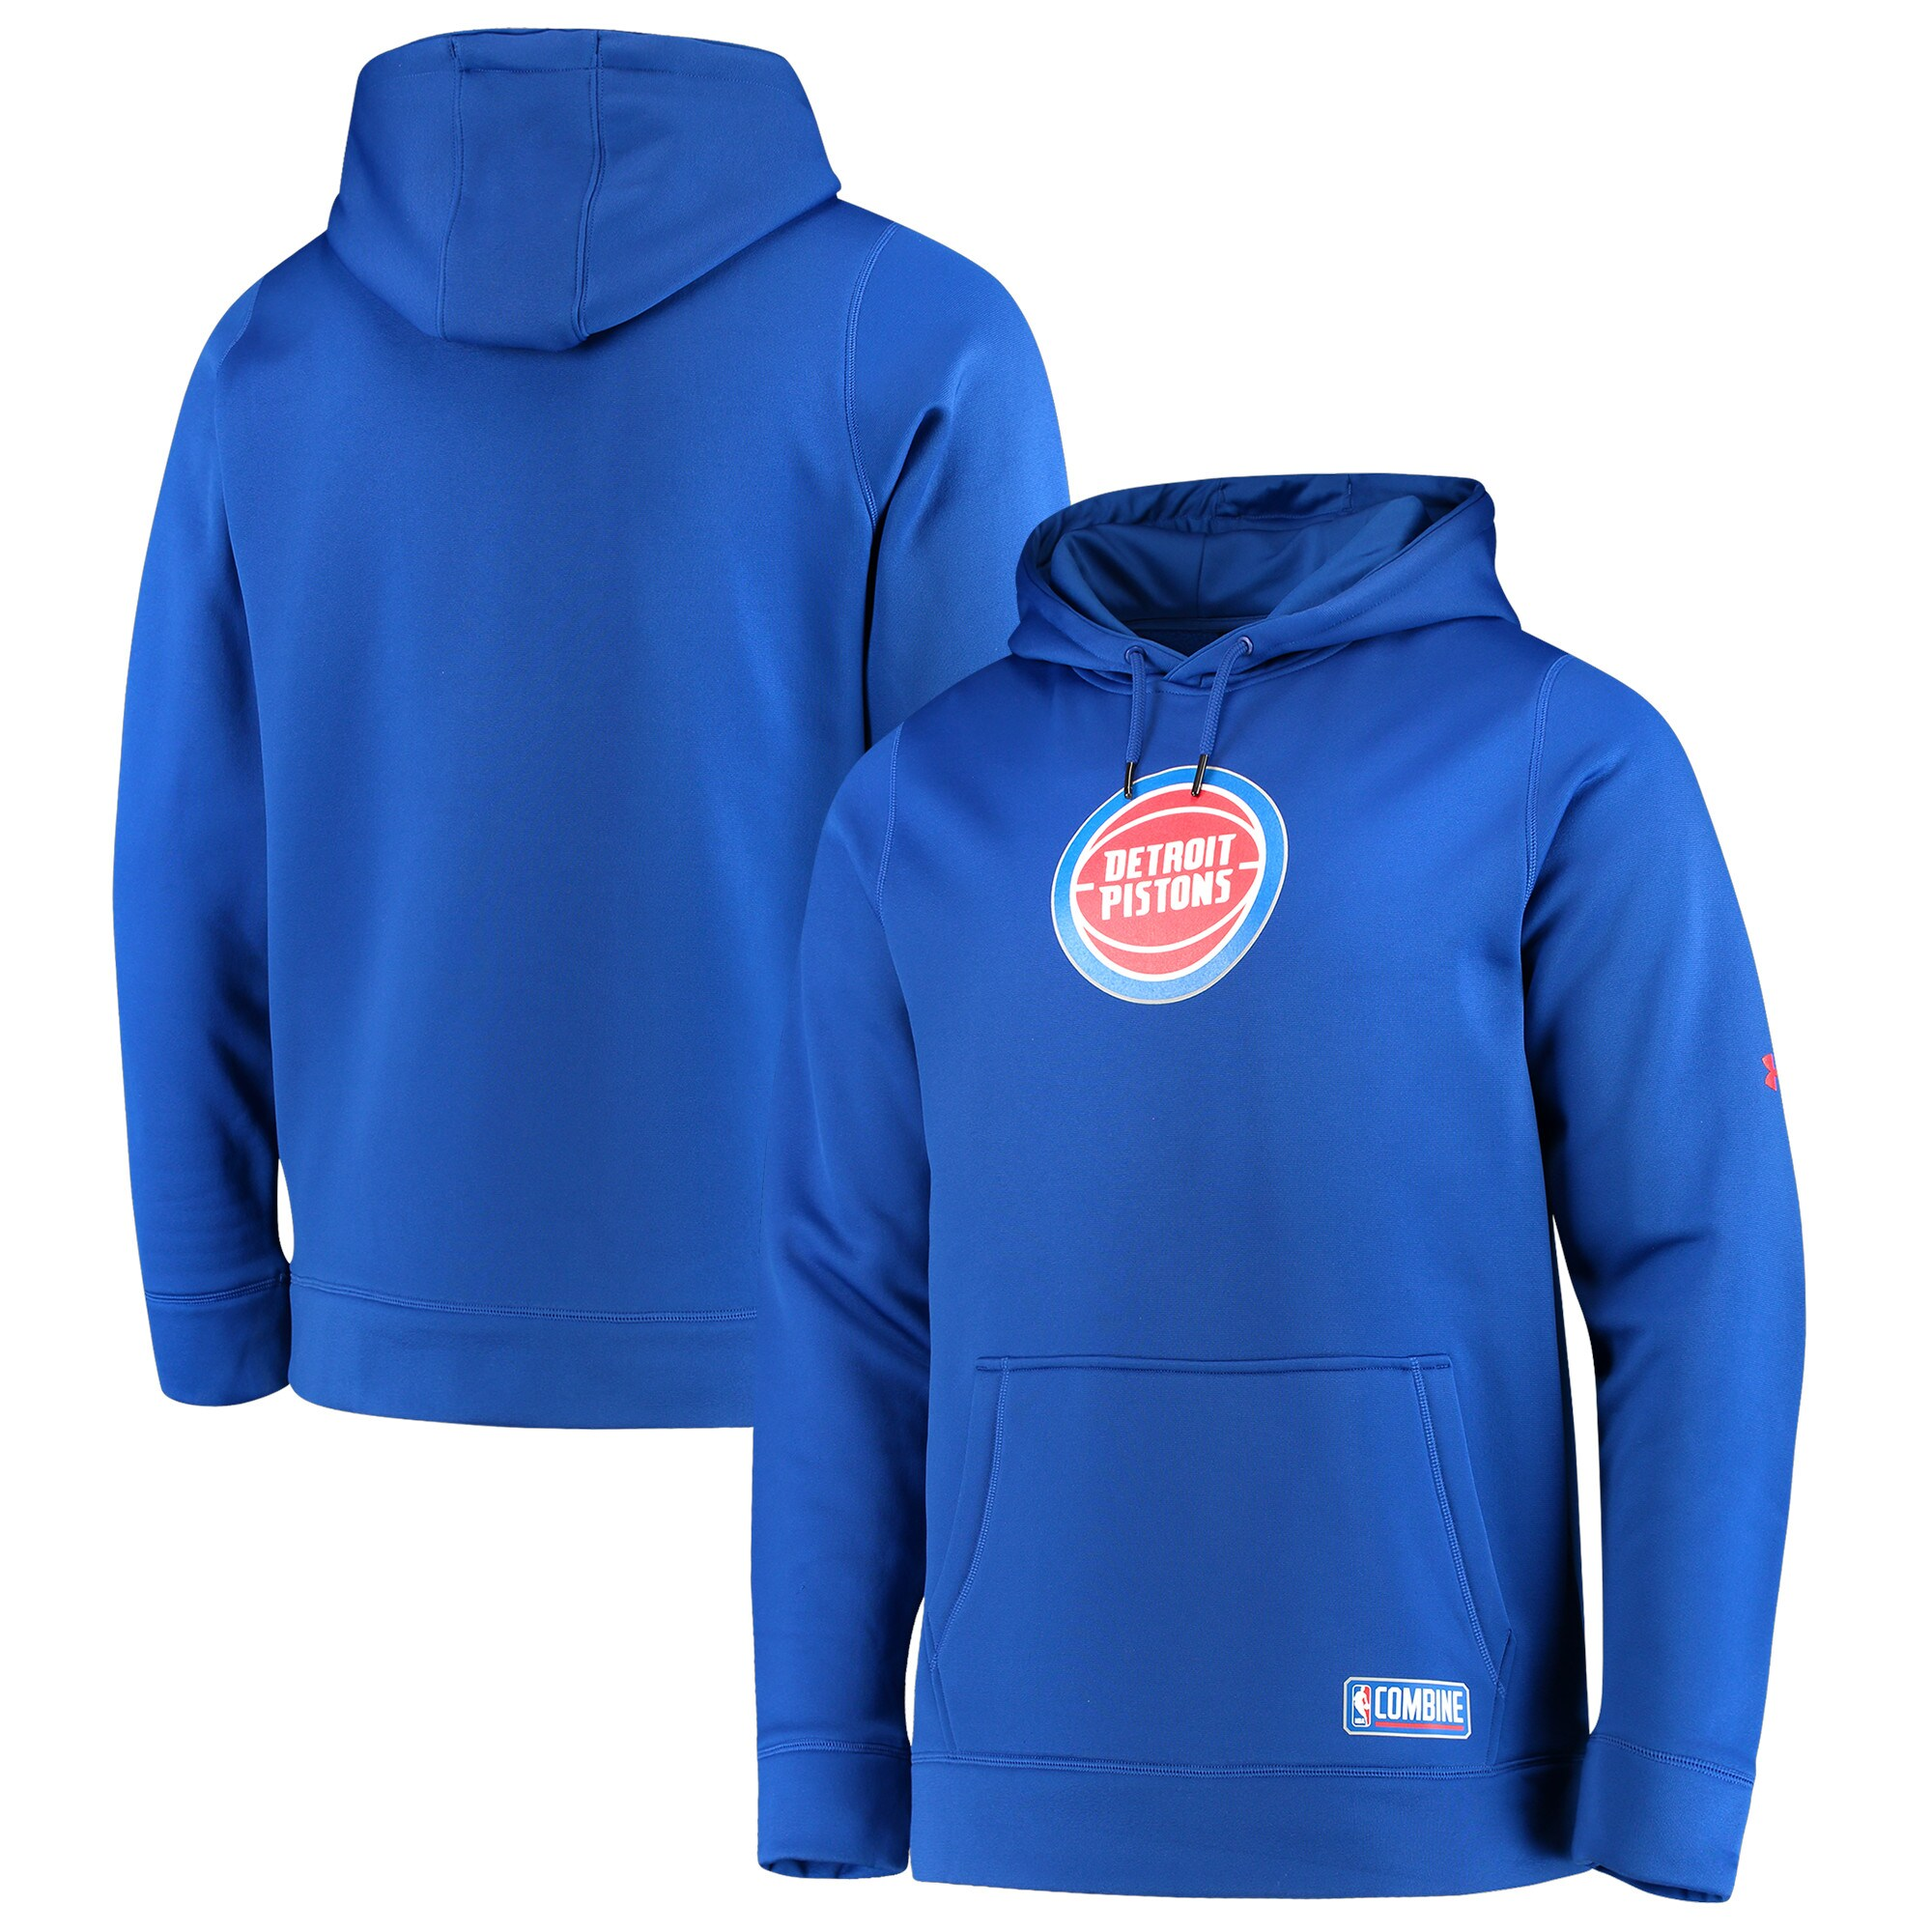 Detroit Pistons Under Armour Team Logo Performance Fleece Pullover Hoodie - Blue